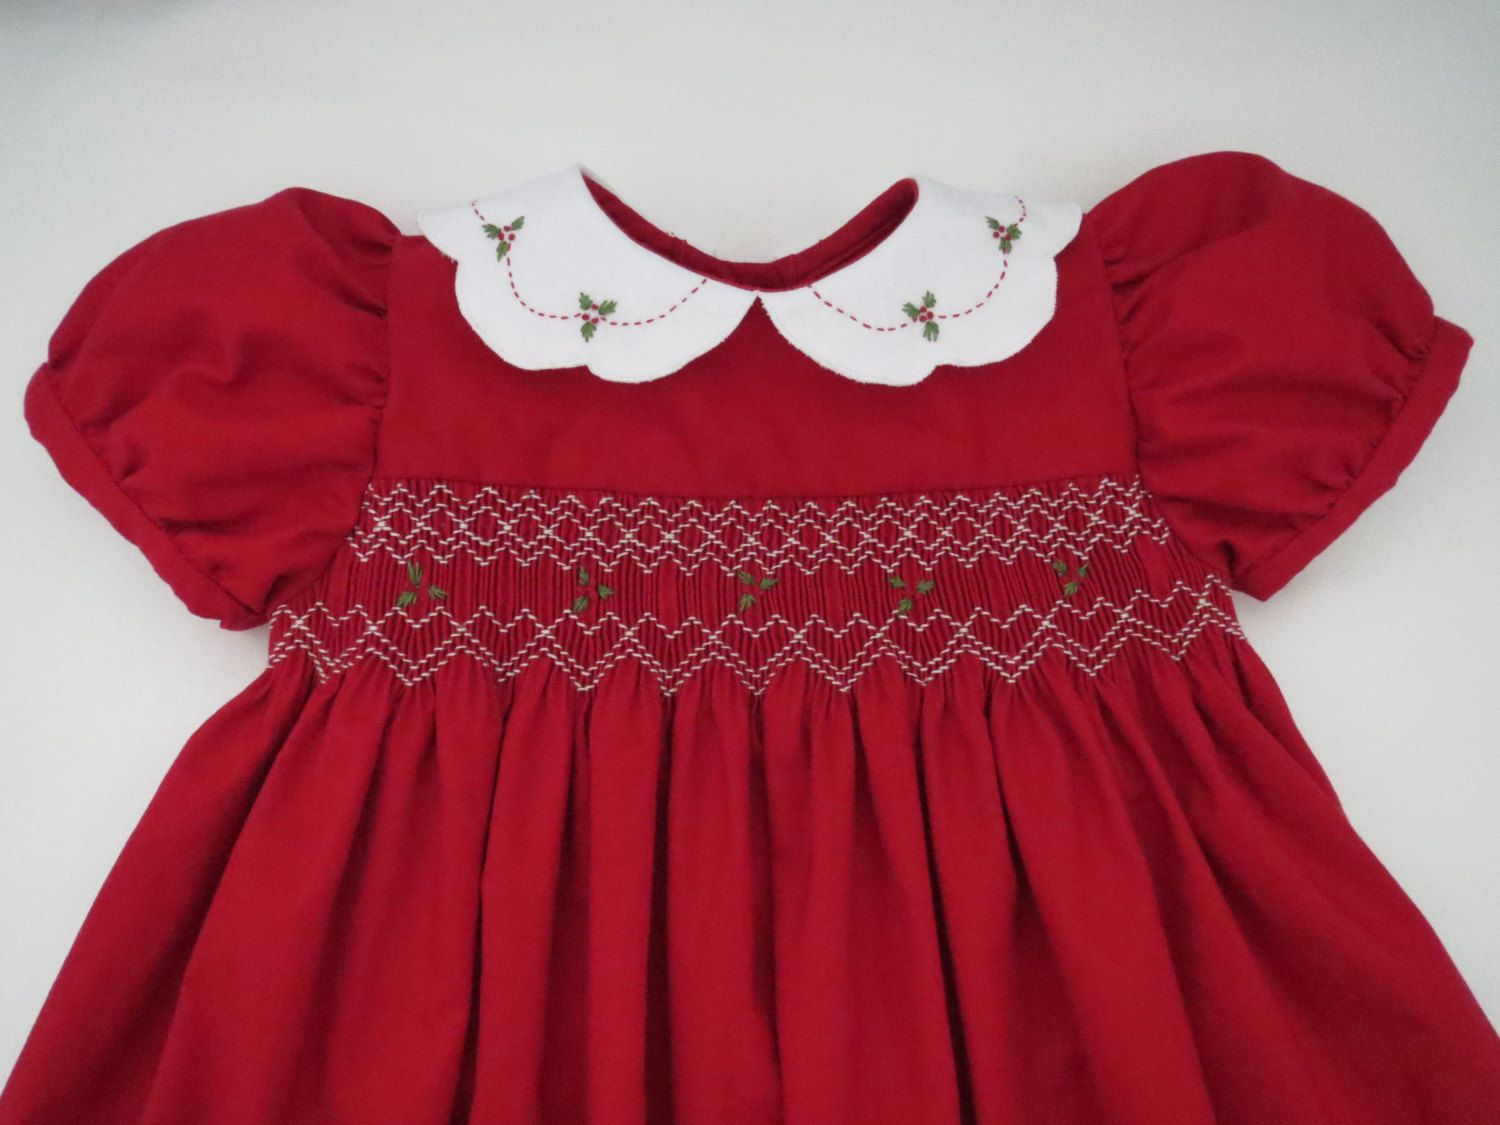 b90635421bb1 Adorable Red and White Christmas Dress for Baby Girl. Hand Smocked ...